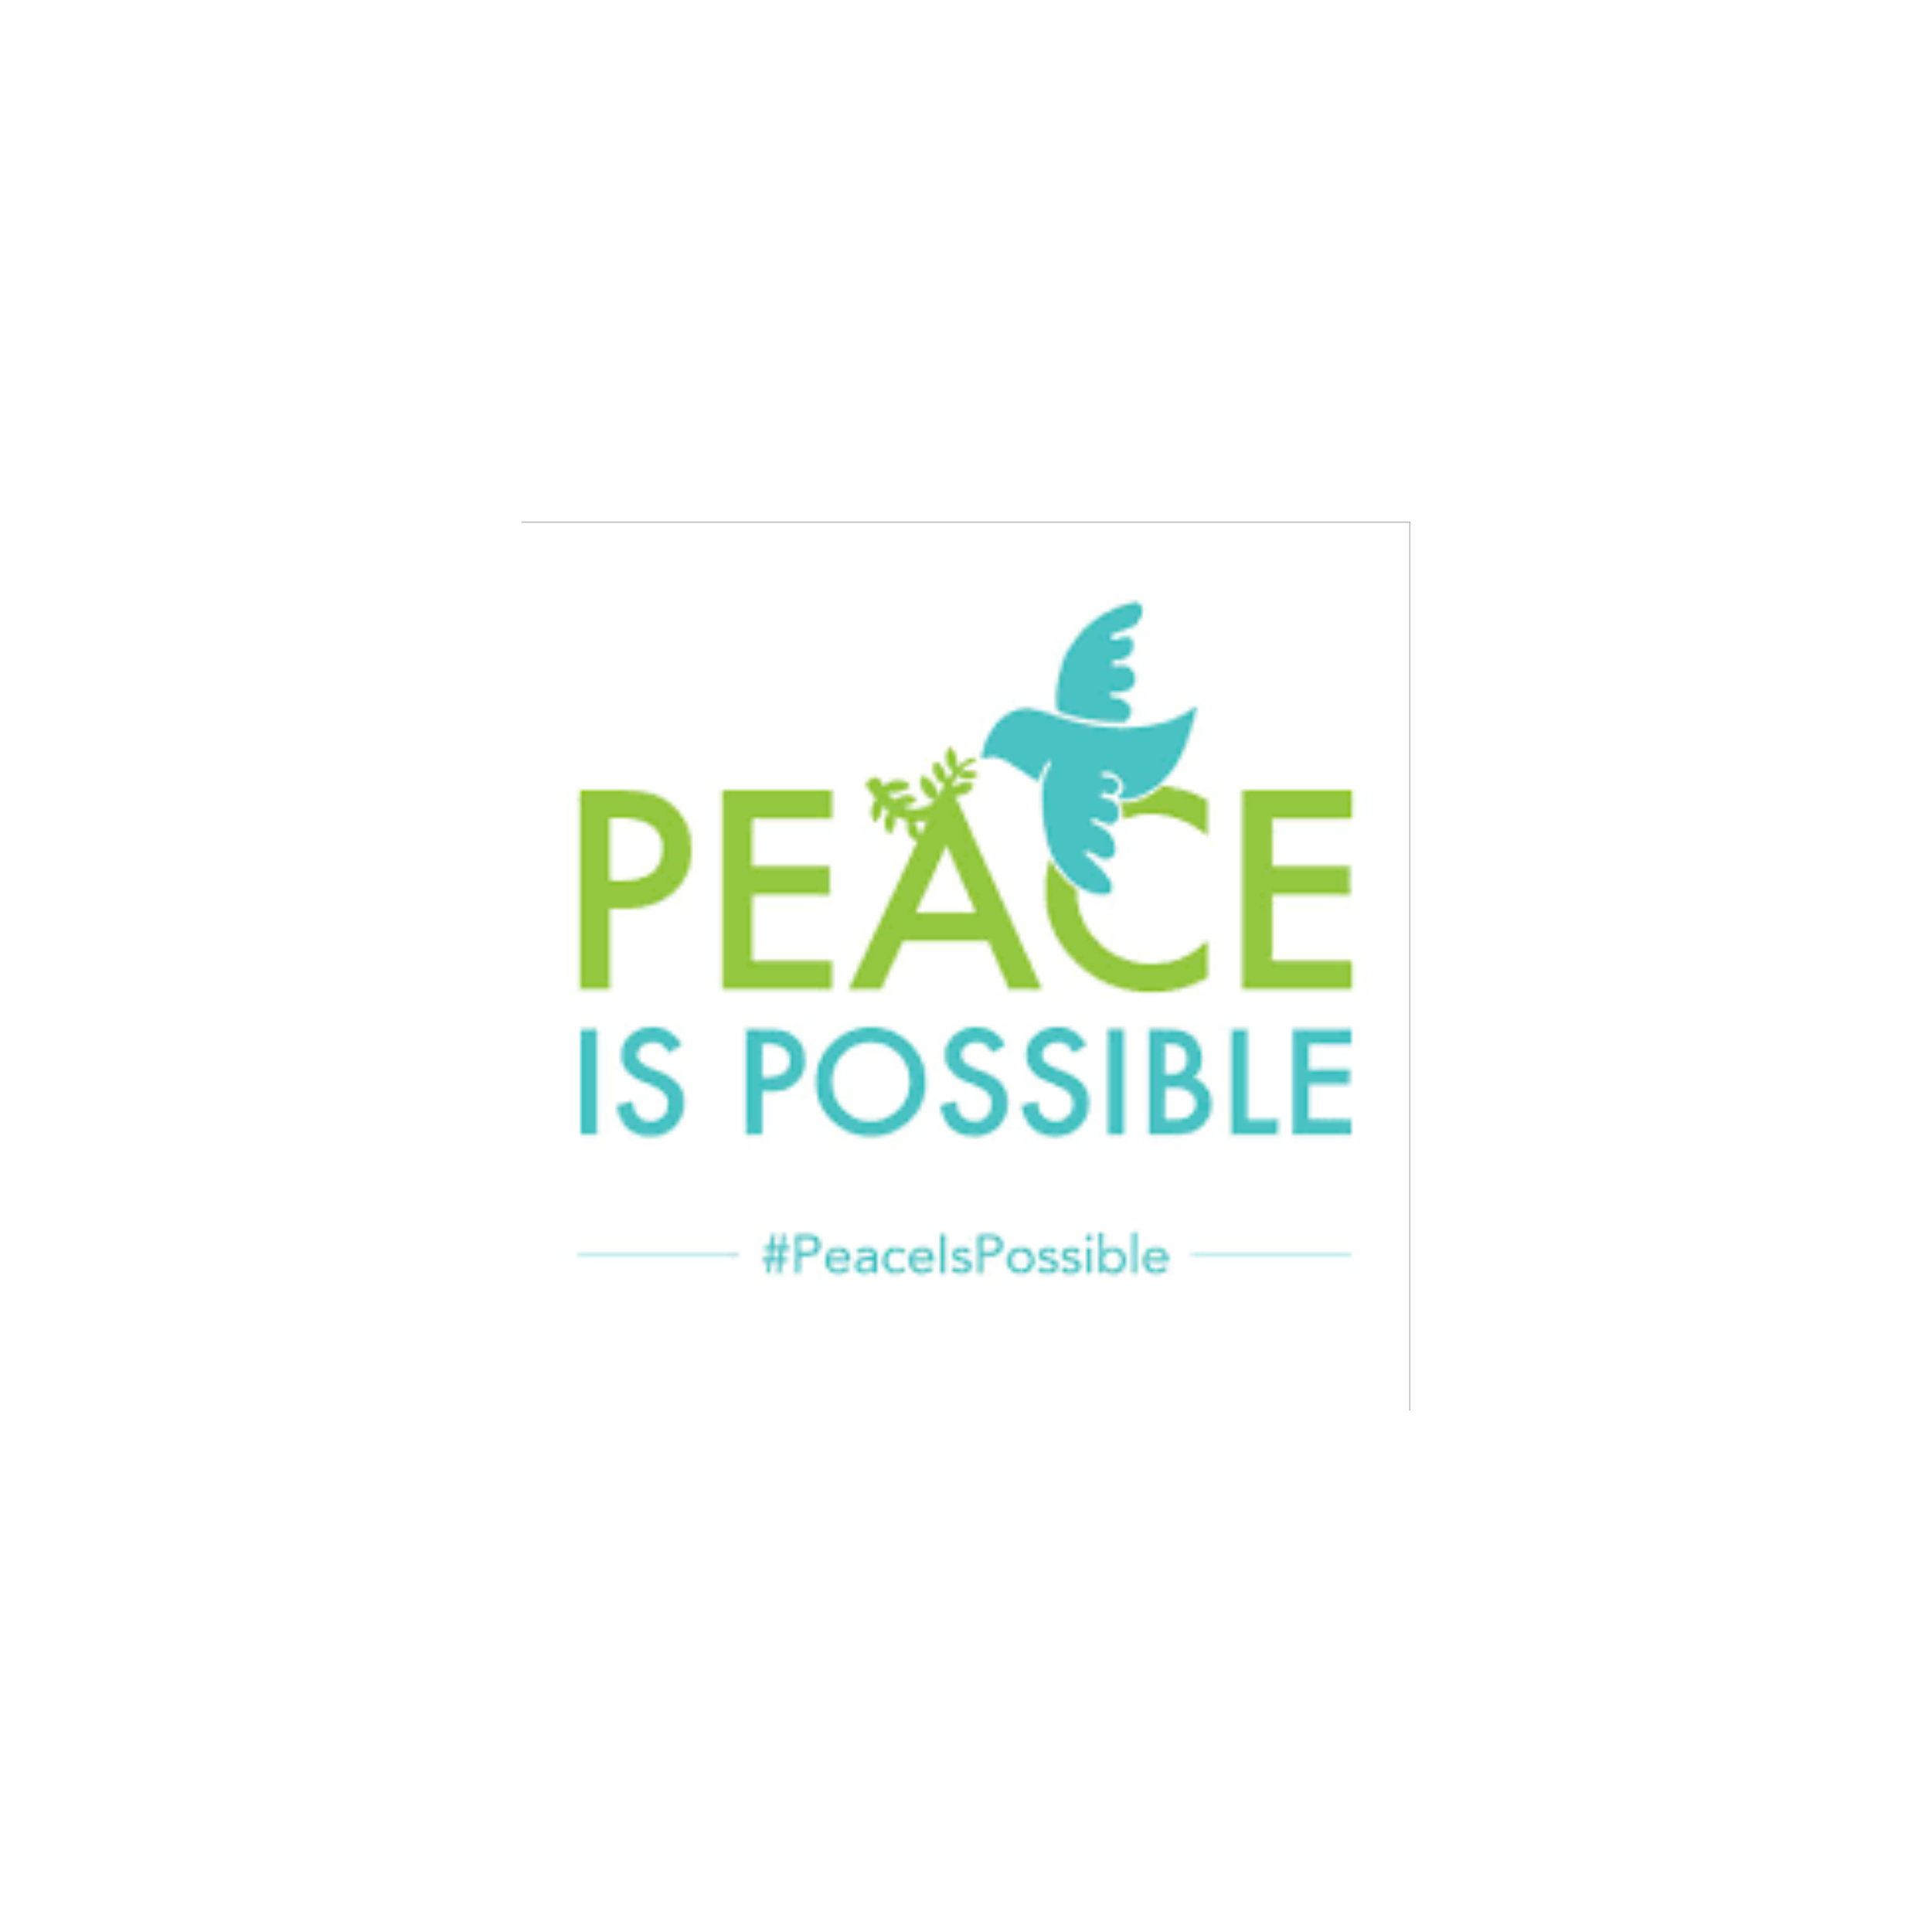 Peace Is Possible , Years Committed: 2  Peace Is Possible is an initiative to empower young leaders to create sustainable solutions to reduce inequalities and promote peace and justice. This program is aligned with UN SDGs 10, 16, and 17.  Serve as the Representative of the United States International Peace Summits and at events in the United Nations. Manage a 140 country program to promote positive peace, and the acceptance of the rights of others. Train leaders at the local, state, national, and international levels on social justice, human rights, United Nations SDGs, Diplomacy, and Dialogue. Managed online community training thousands of leaders and preparing them for a single day of action on Peace Day.